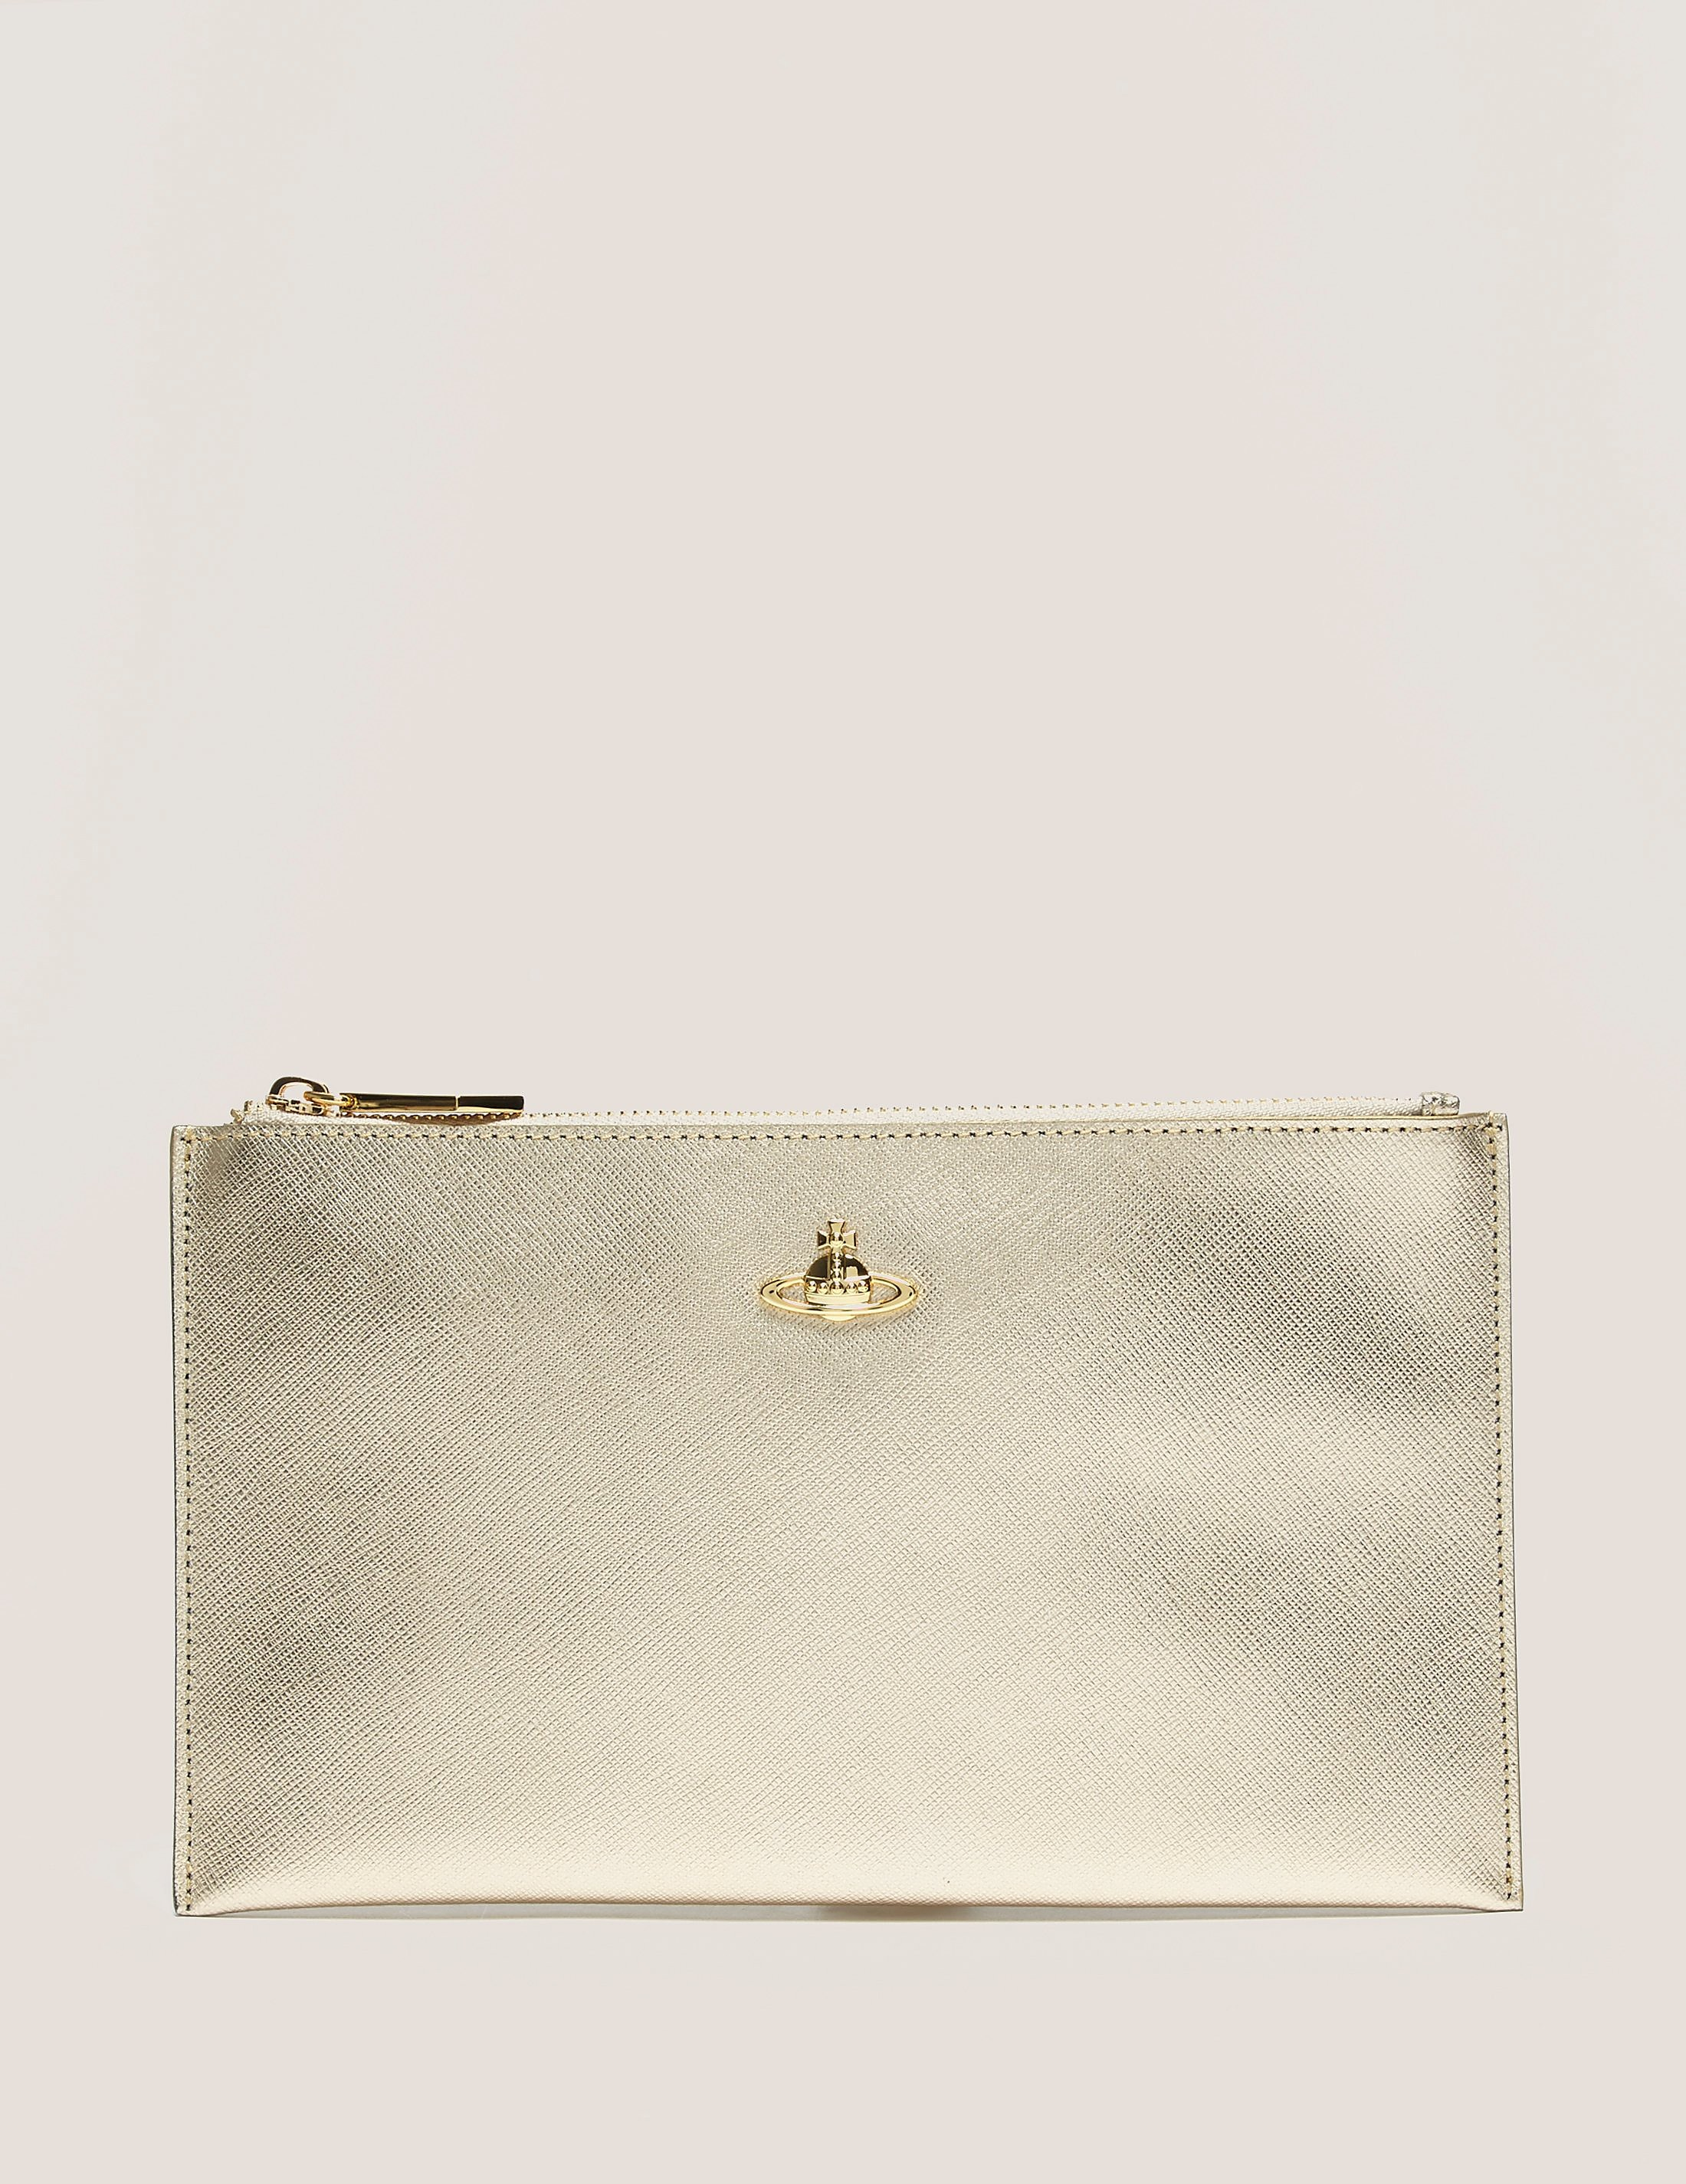 Vivienne Westwood Orb Pouch